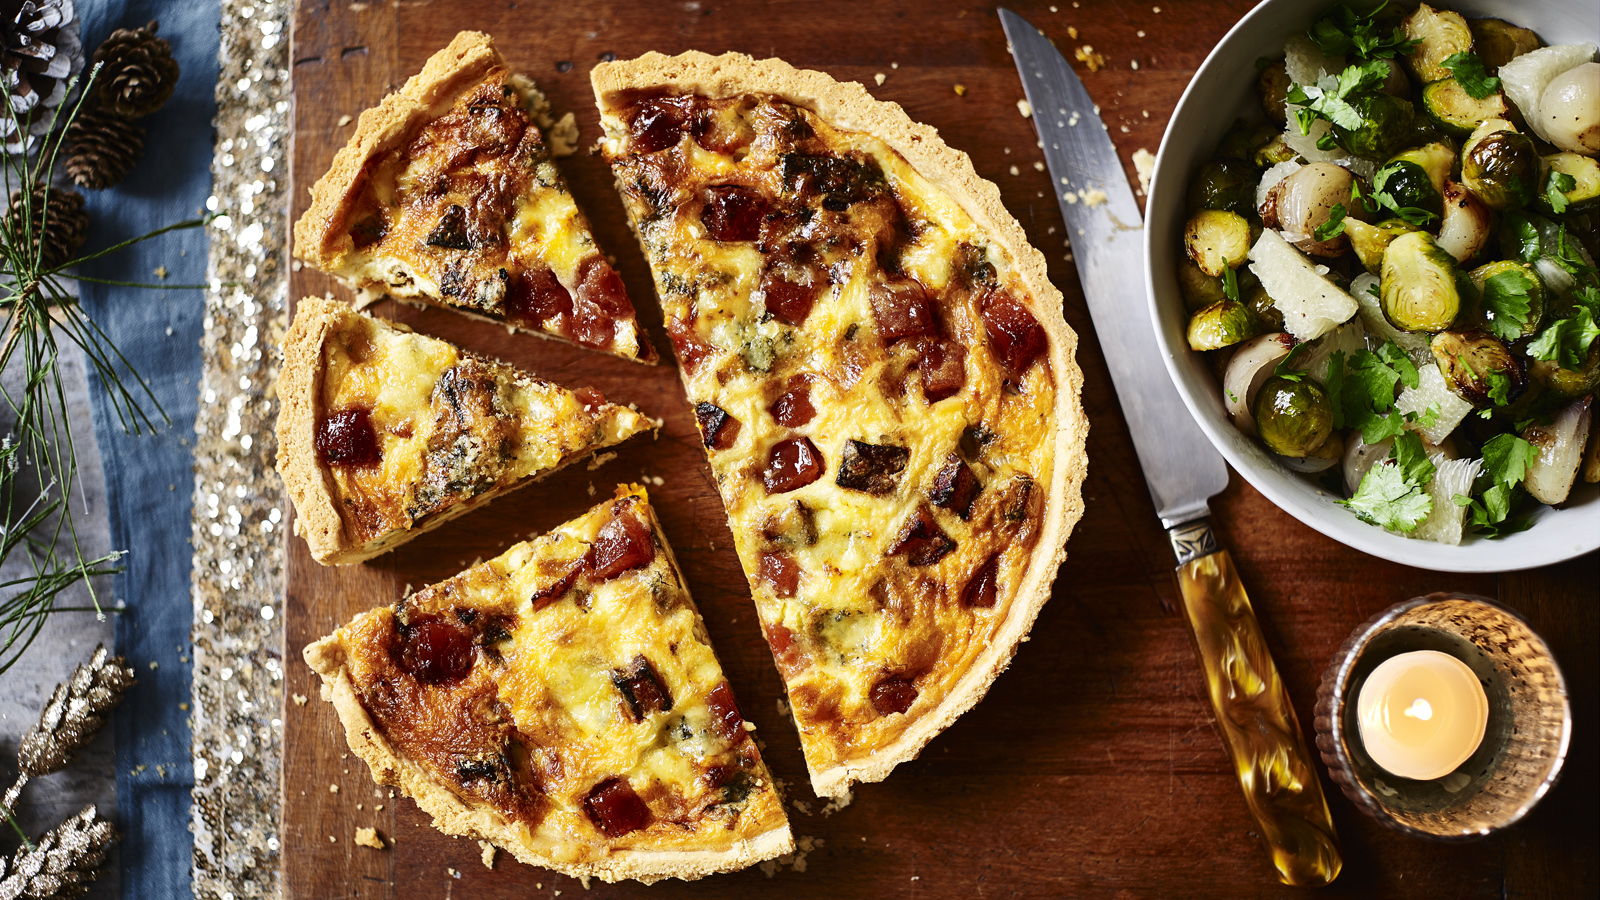 Butternut squash and stilton quiche with roasted sprouts recipe butternut squash and stilton quiche with roasted sprouts recipe bbc food forumfinder Gallery